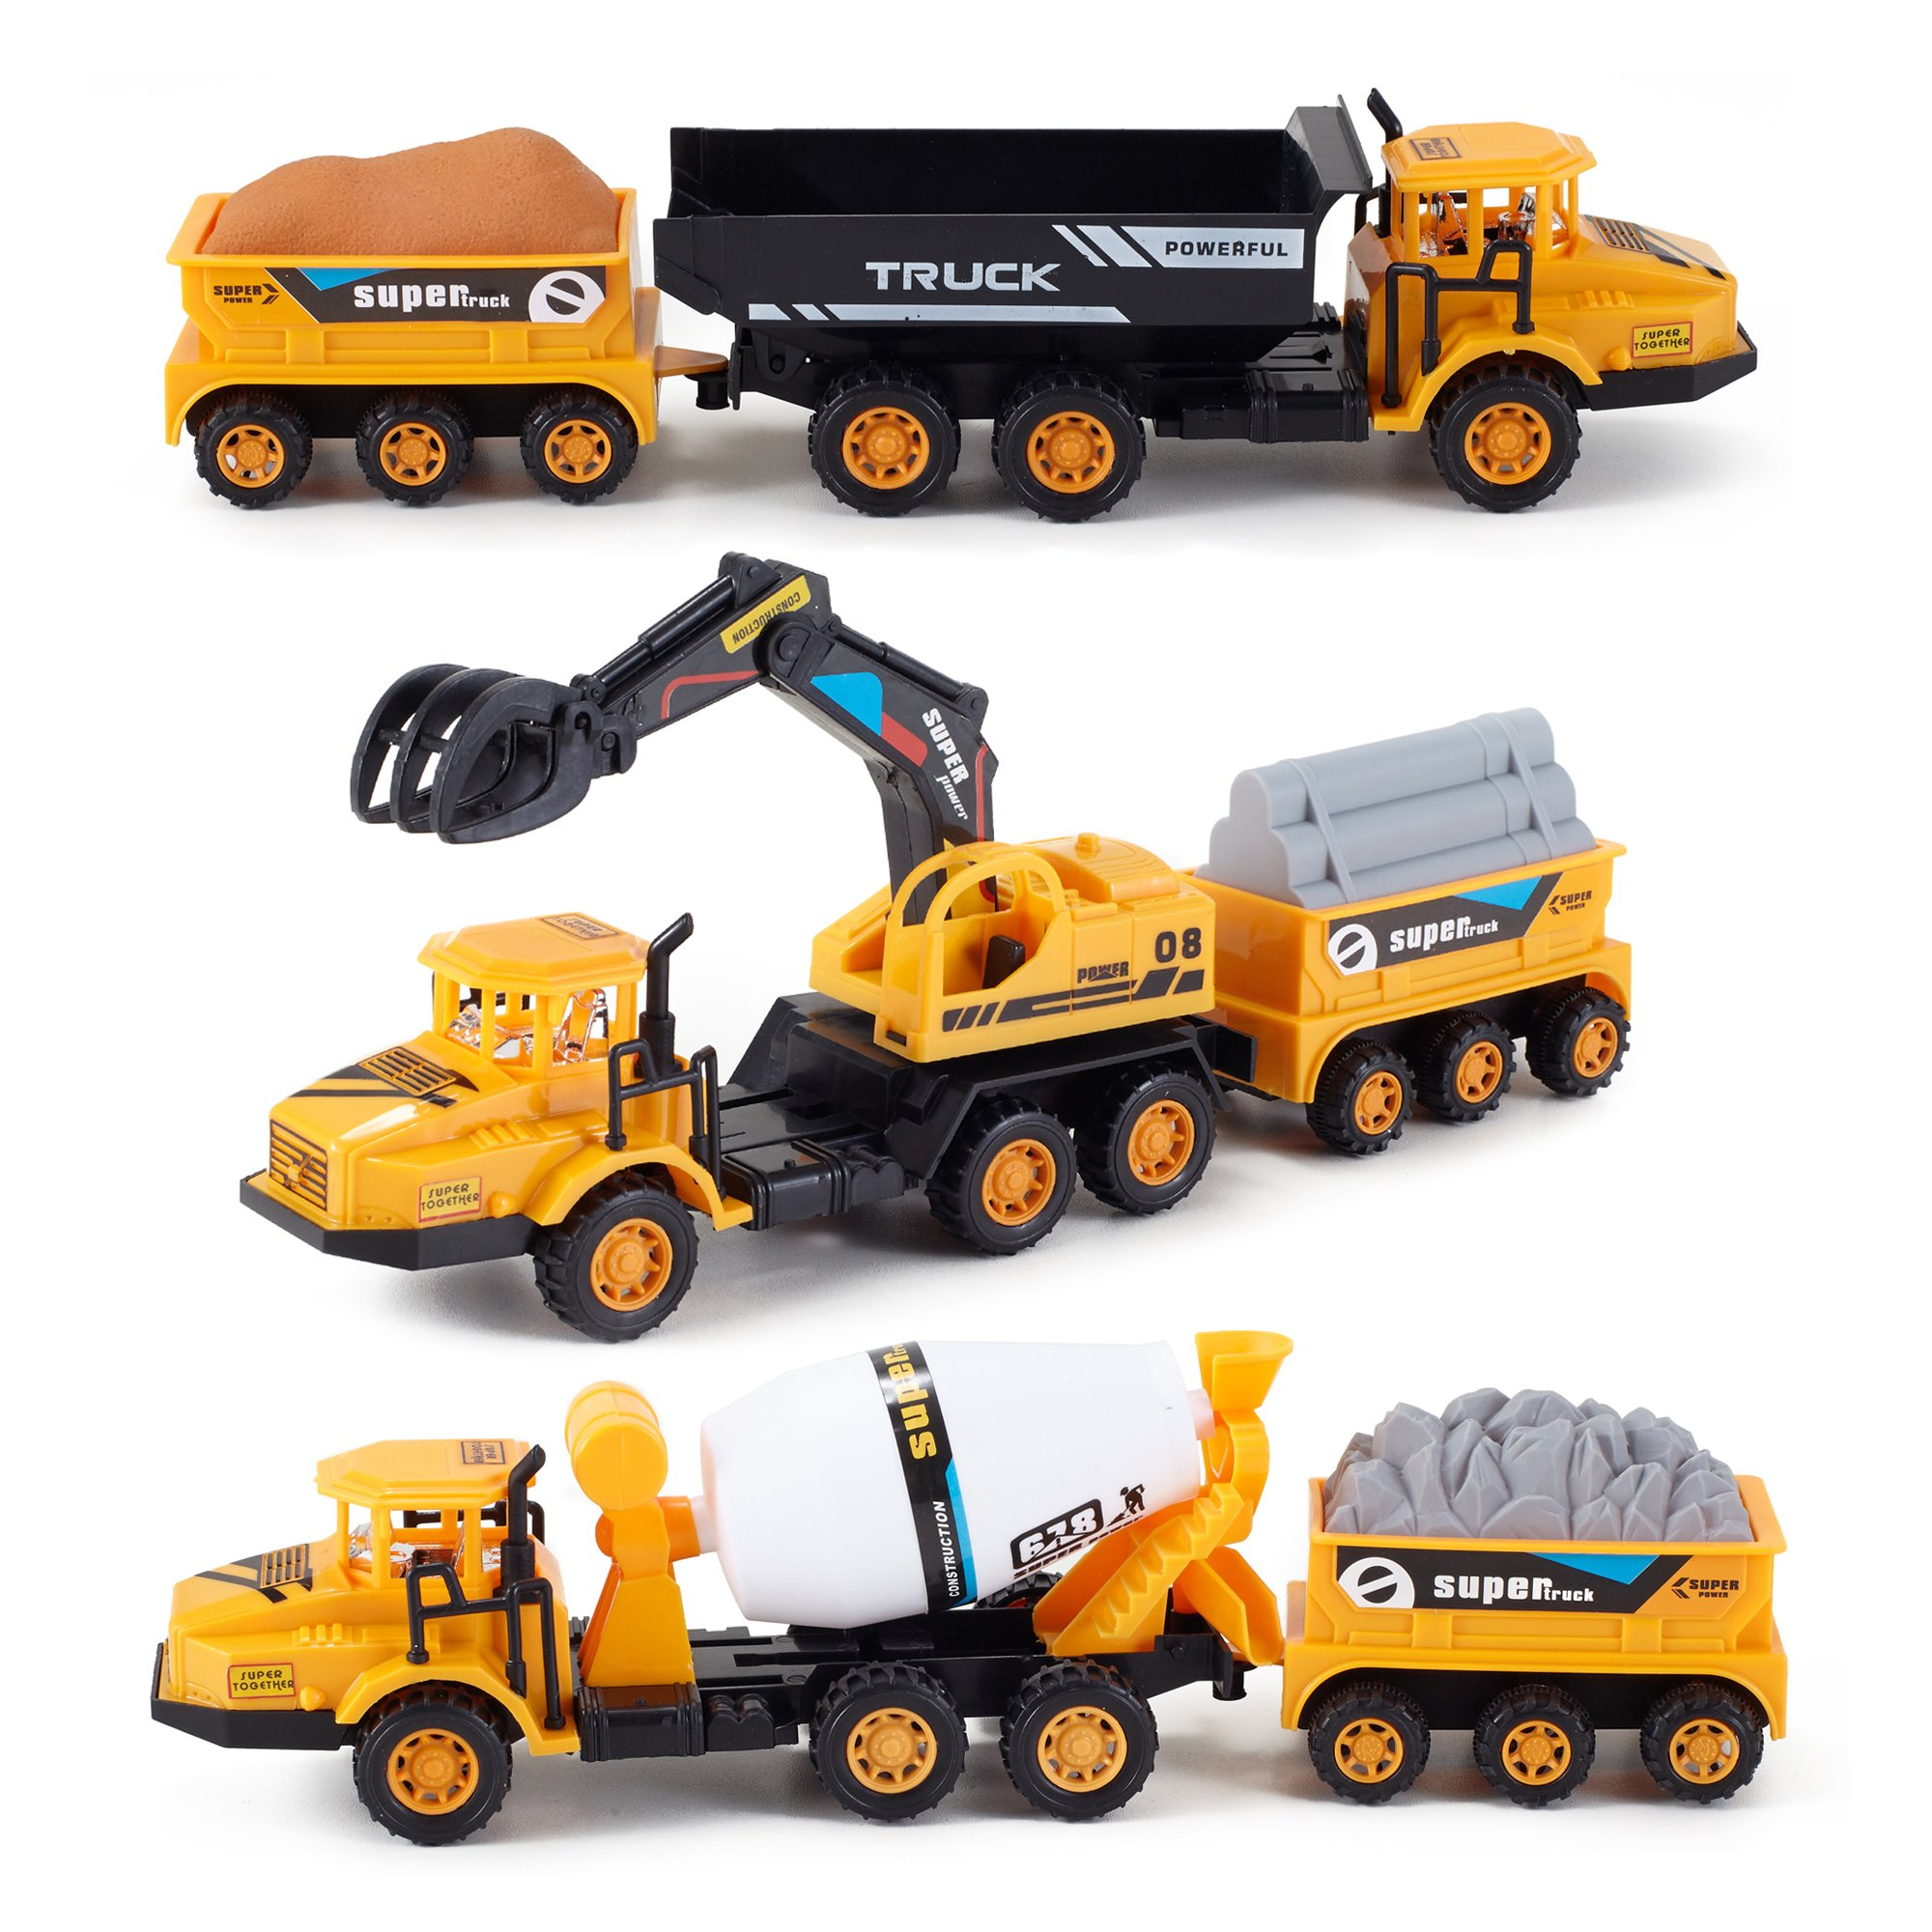 Liberty Imports Set of 3 Deluxe Construction Toy Vehicles Playset - Dump Truck, Cement Truck, Excavator